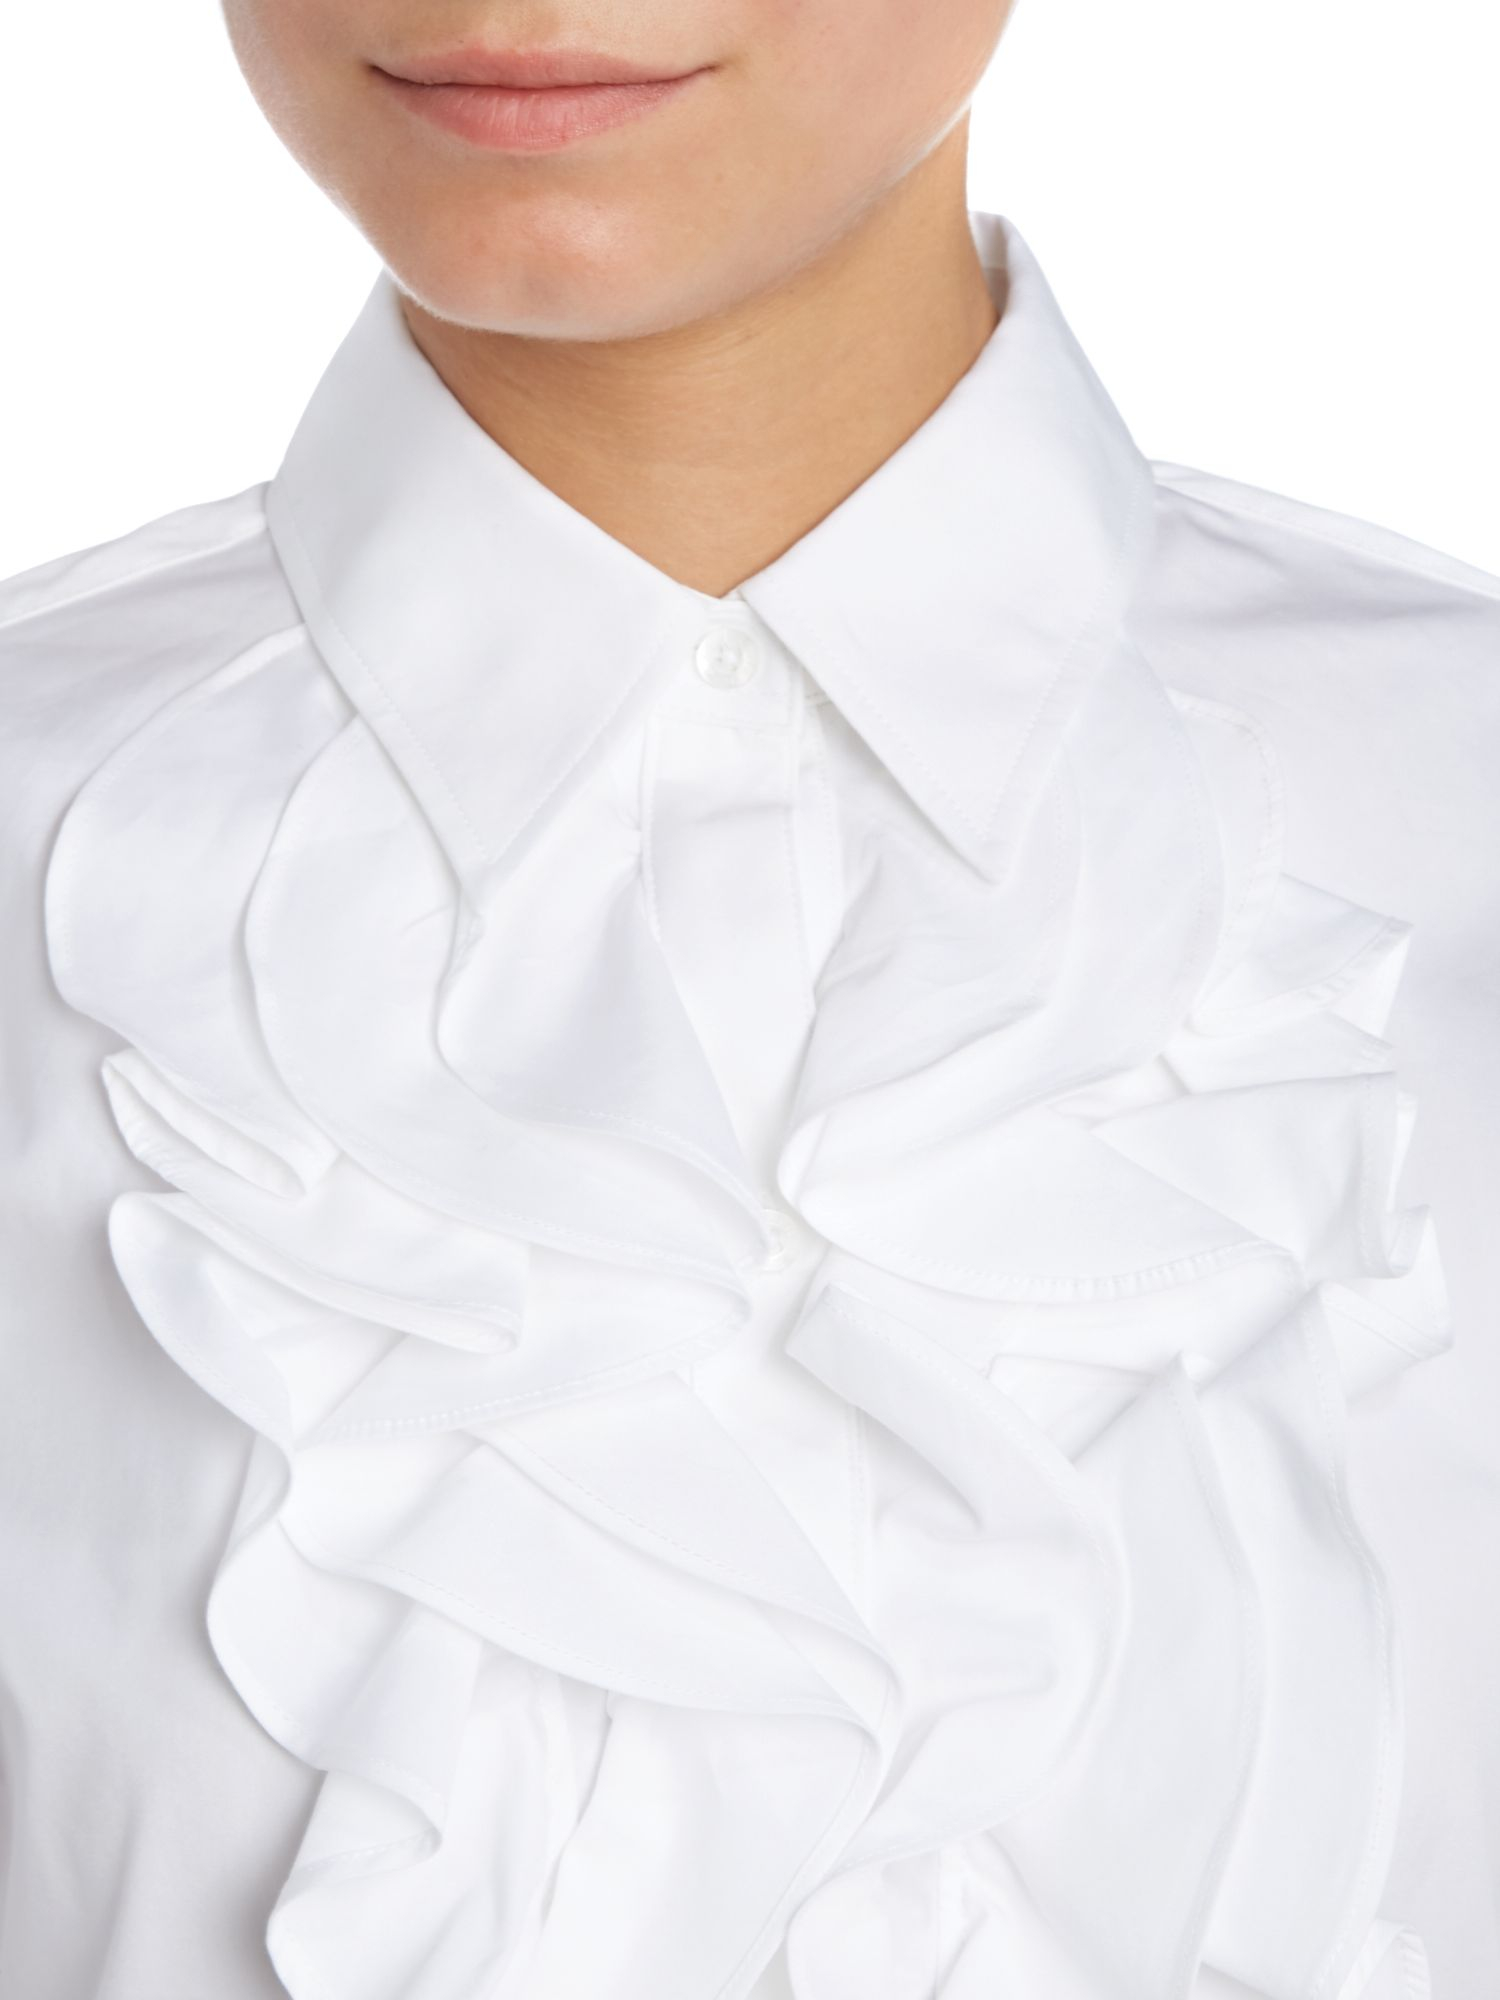 Jones New York White Blouse